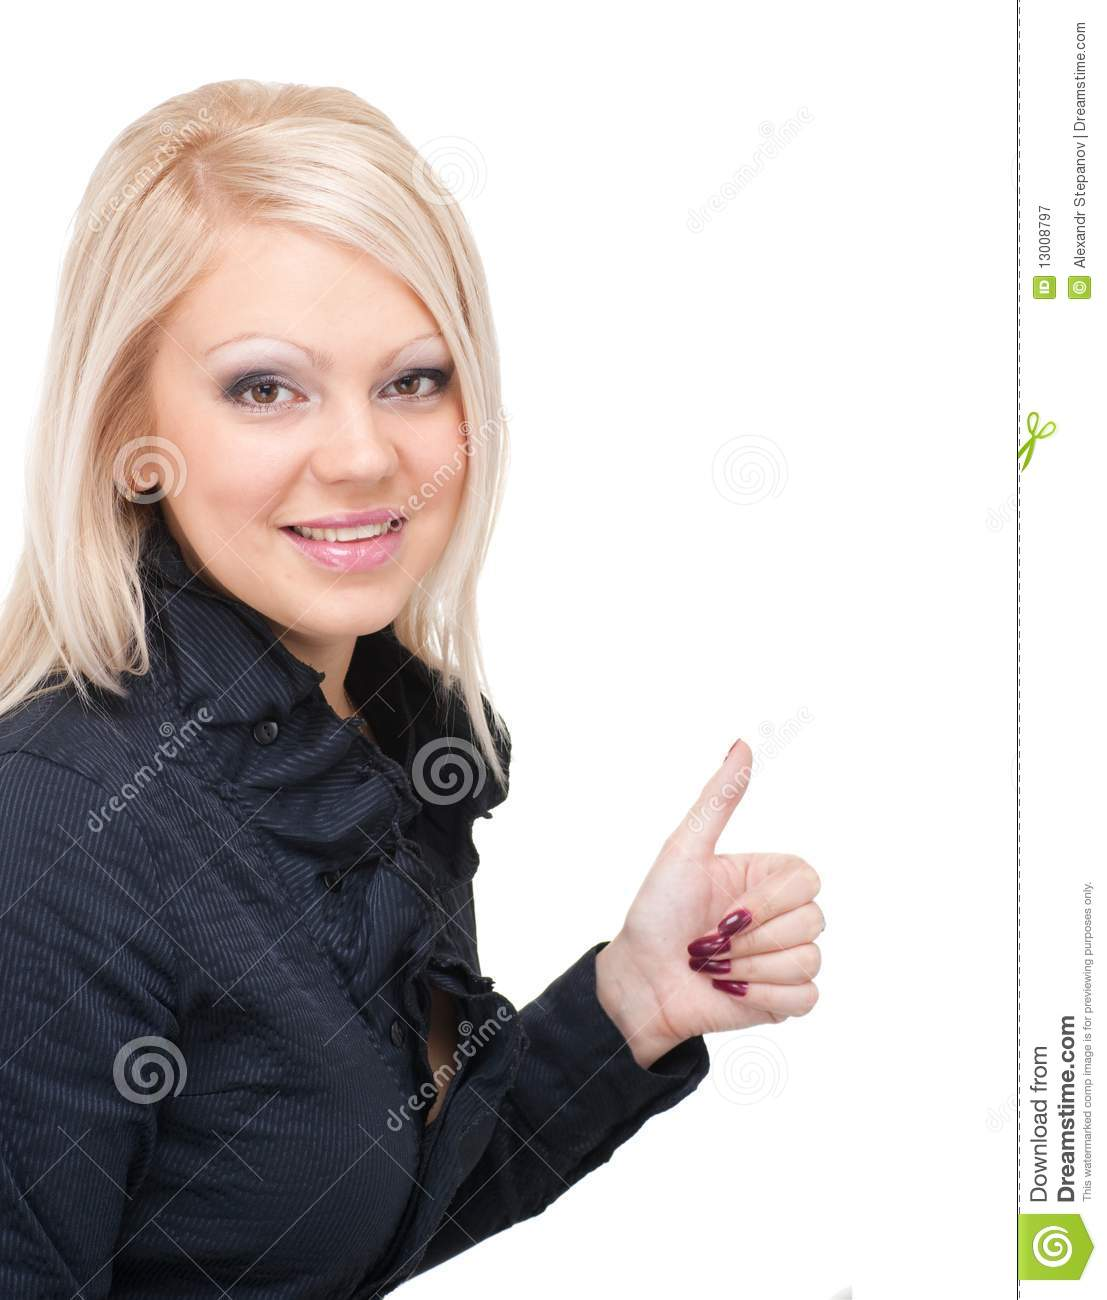 Woman With Thumbs Up Gesture Stock Image - Image of female